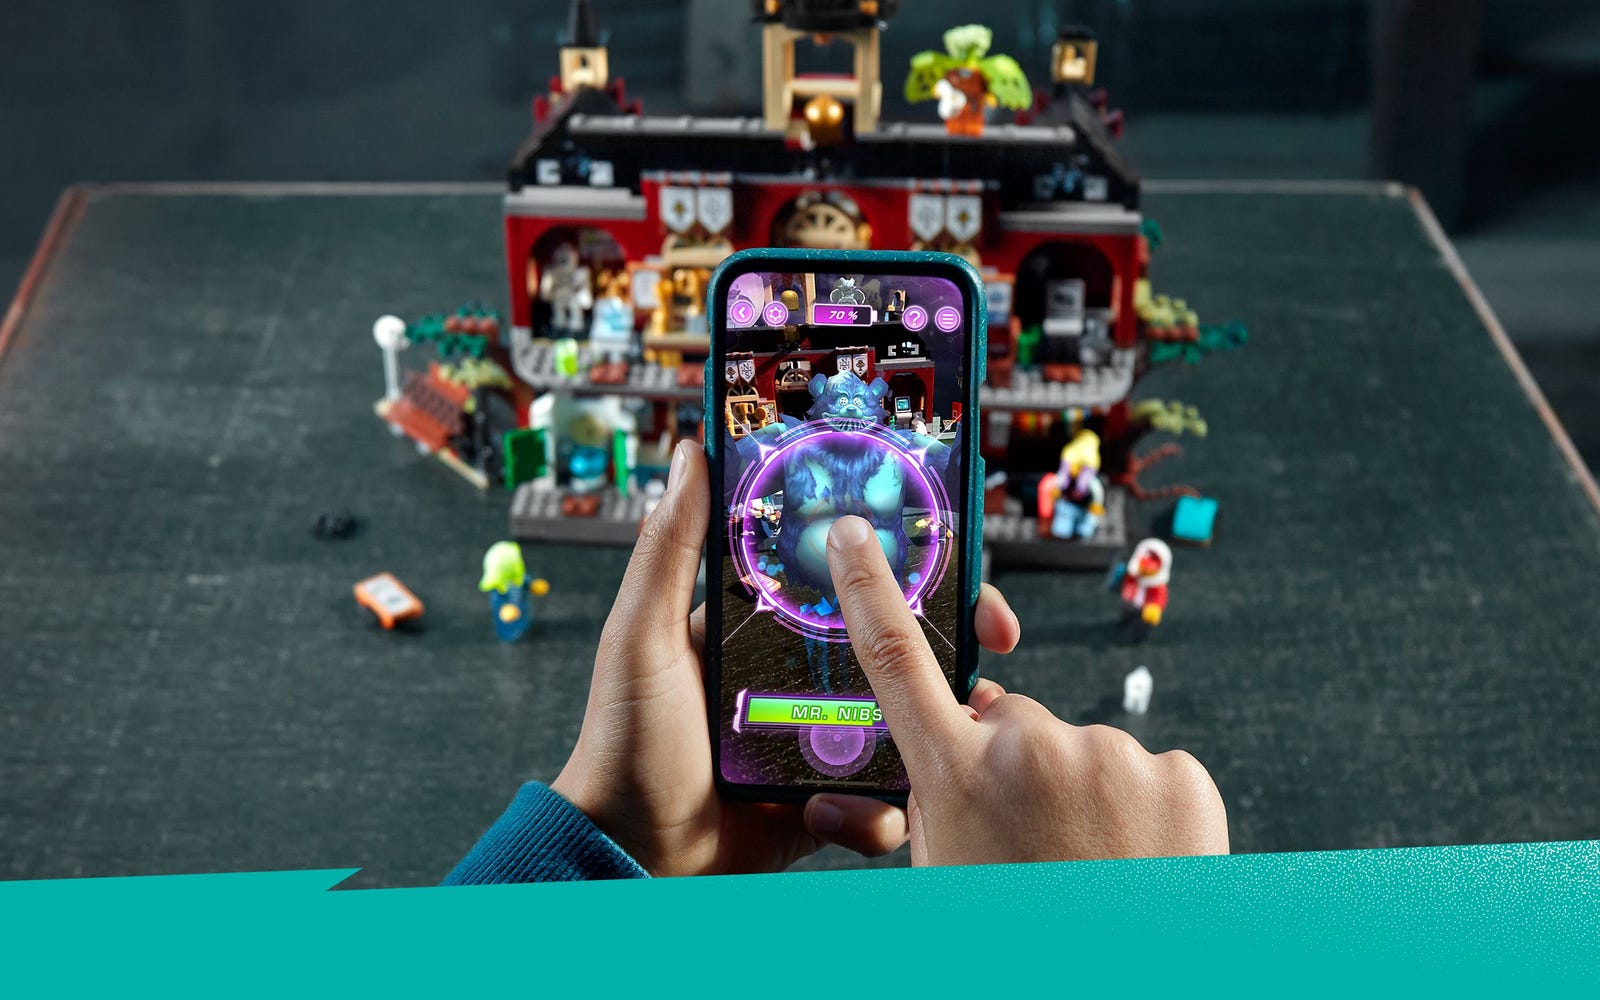 How To Use The Augmented Reality App Lego Hidden Side Lego Com Official Lego Shop Us